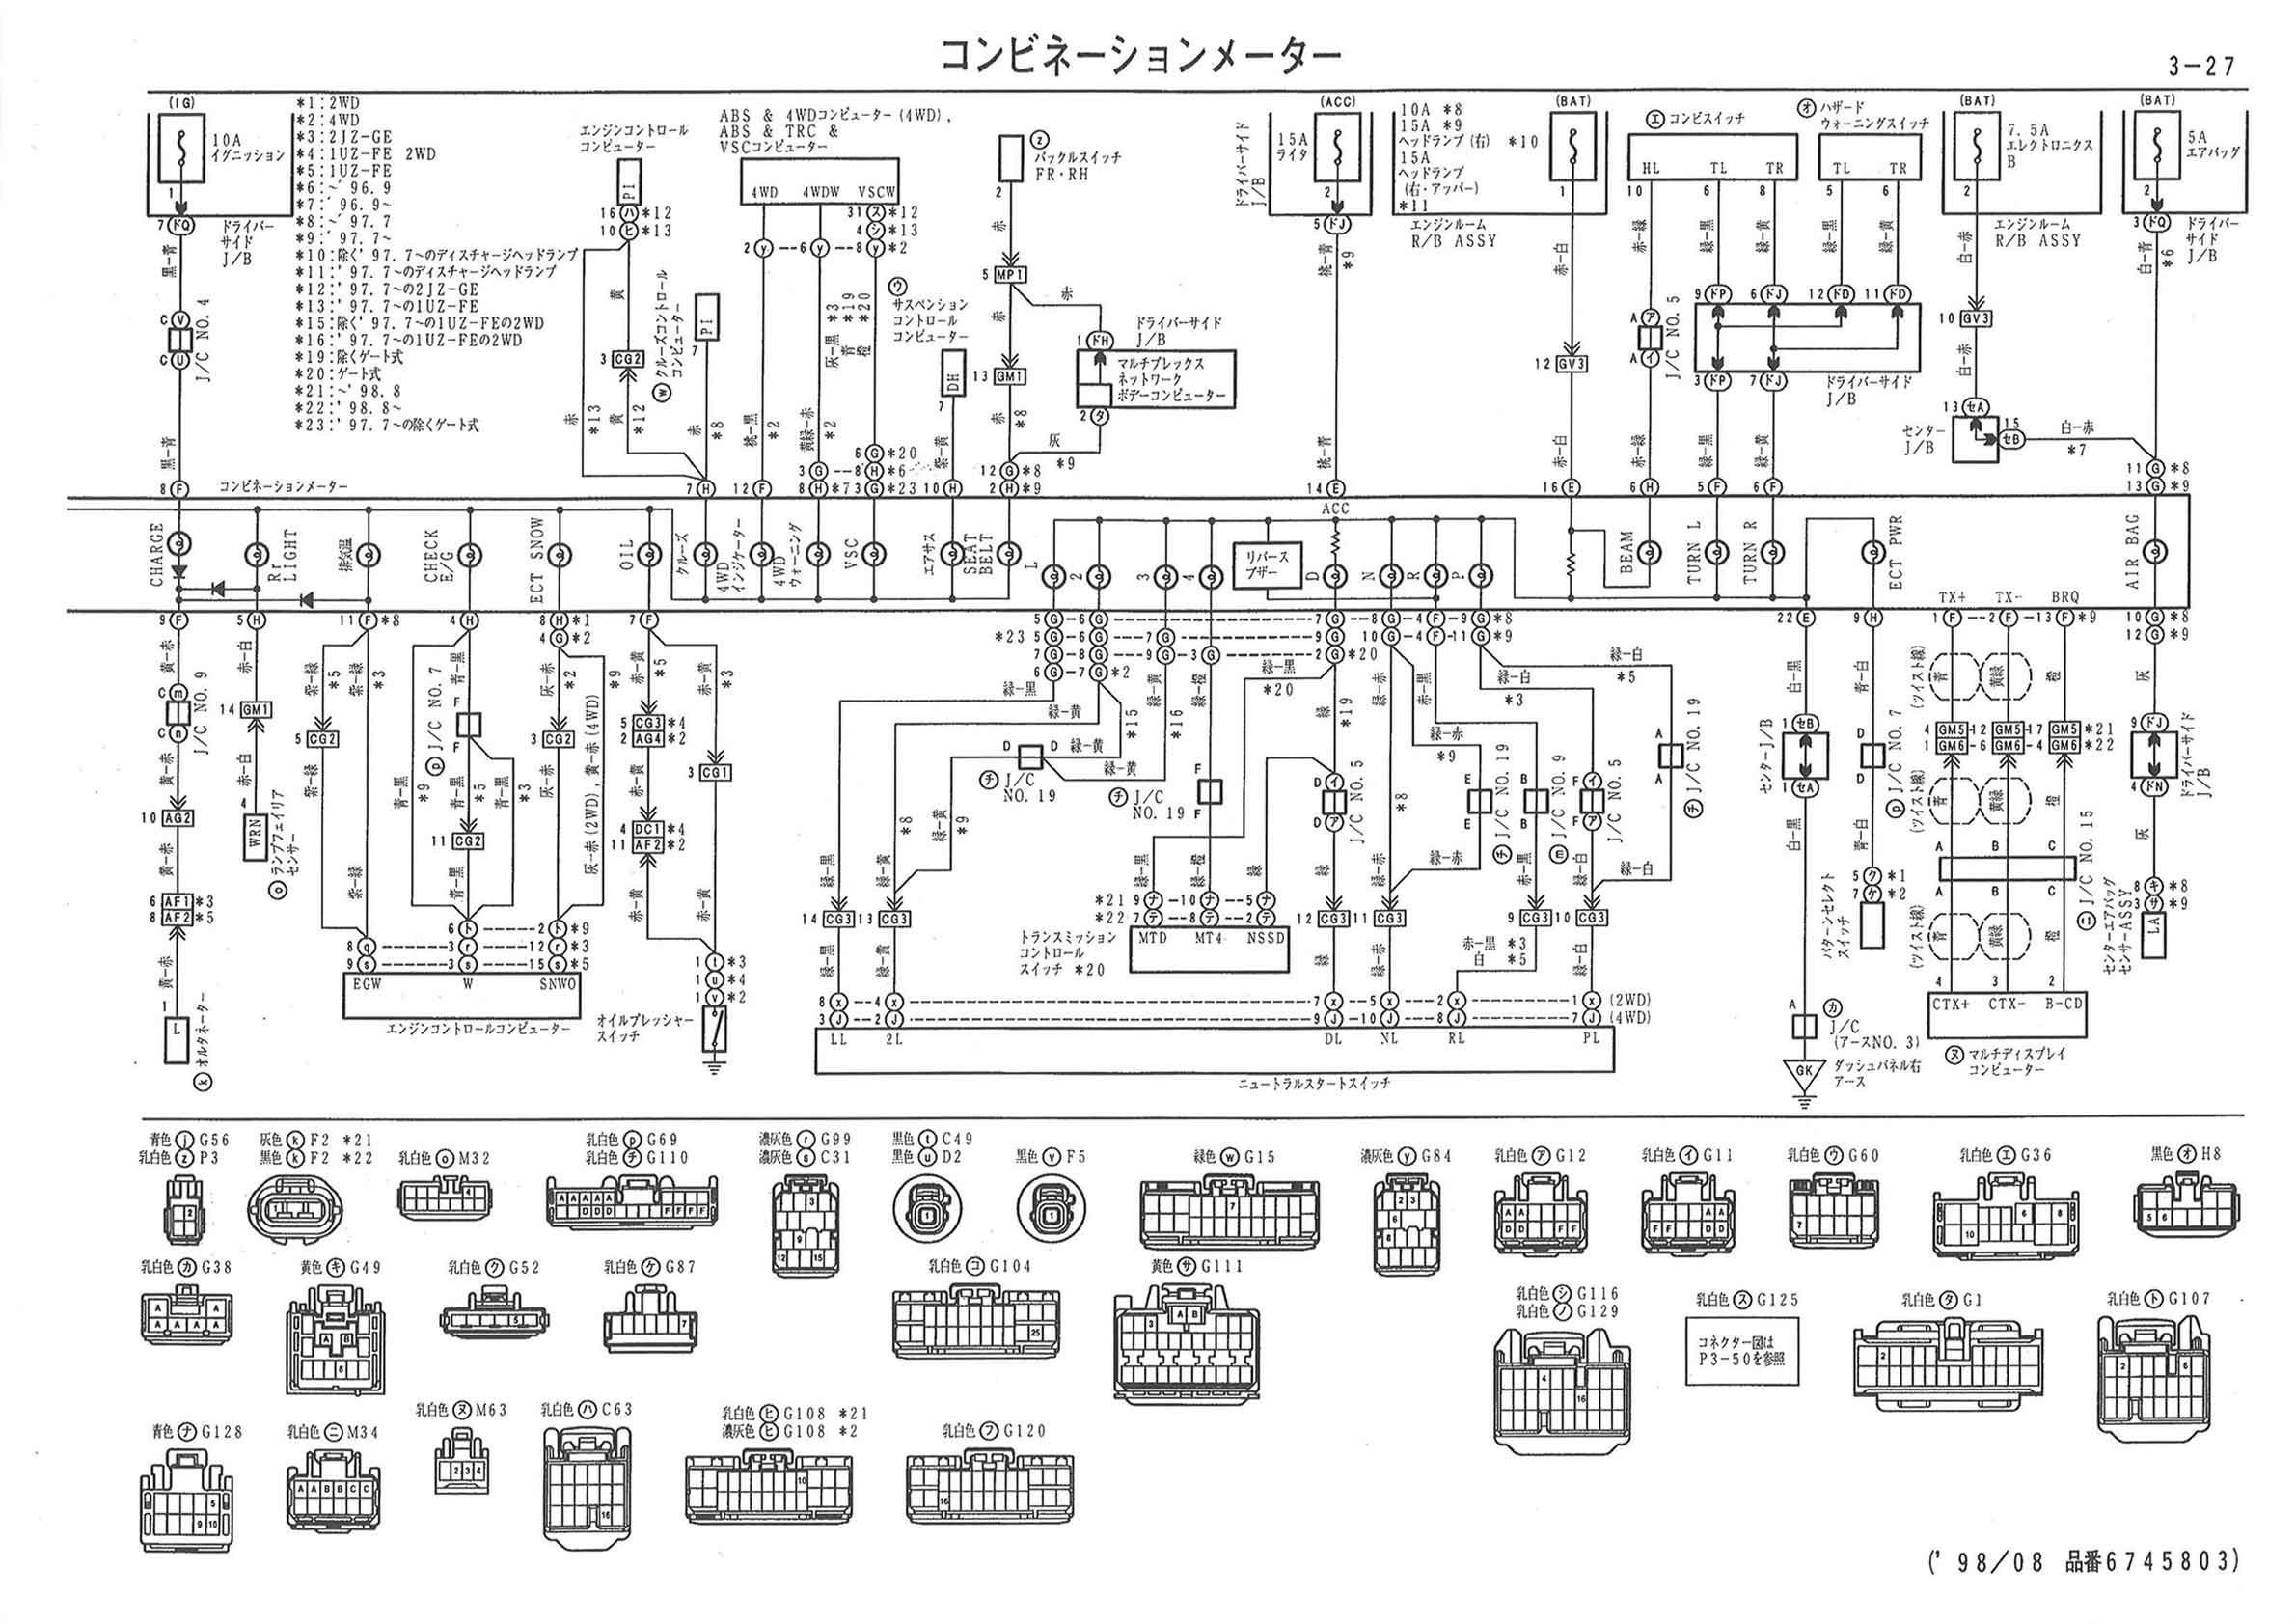 1jz Gte Vvt I Wiring Diagram Block And Schematic Diagrams 11 Ecm Free Image Engine W16 For User Manual Swap 240sx Ecu Sensor